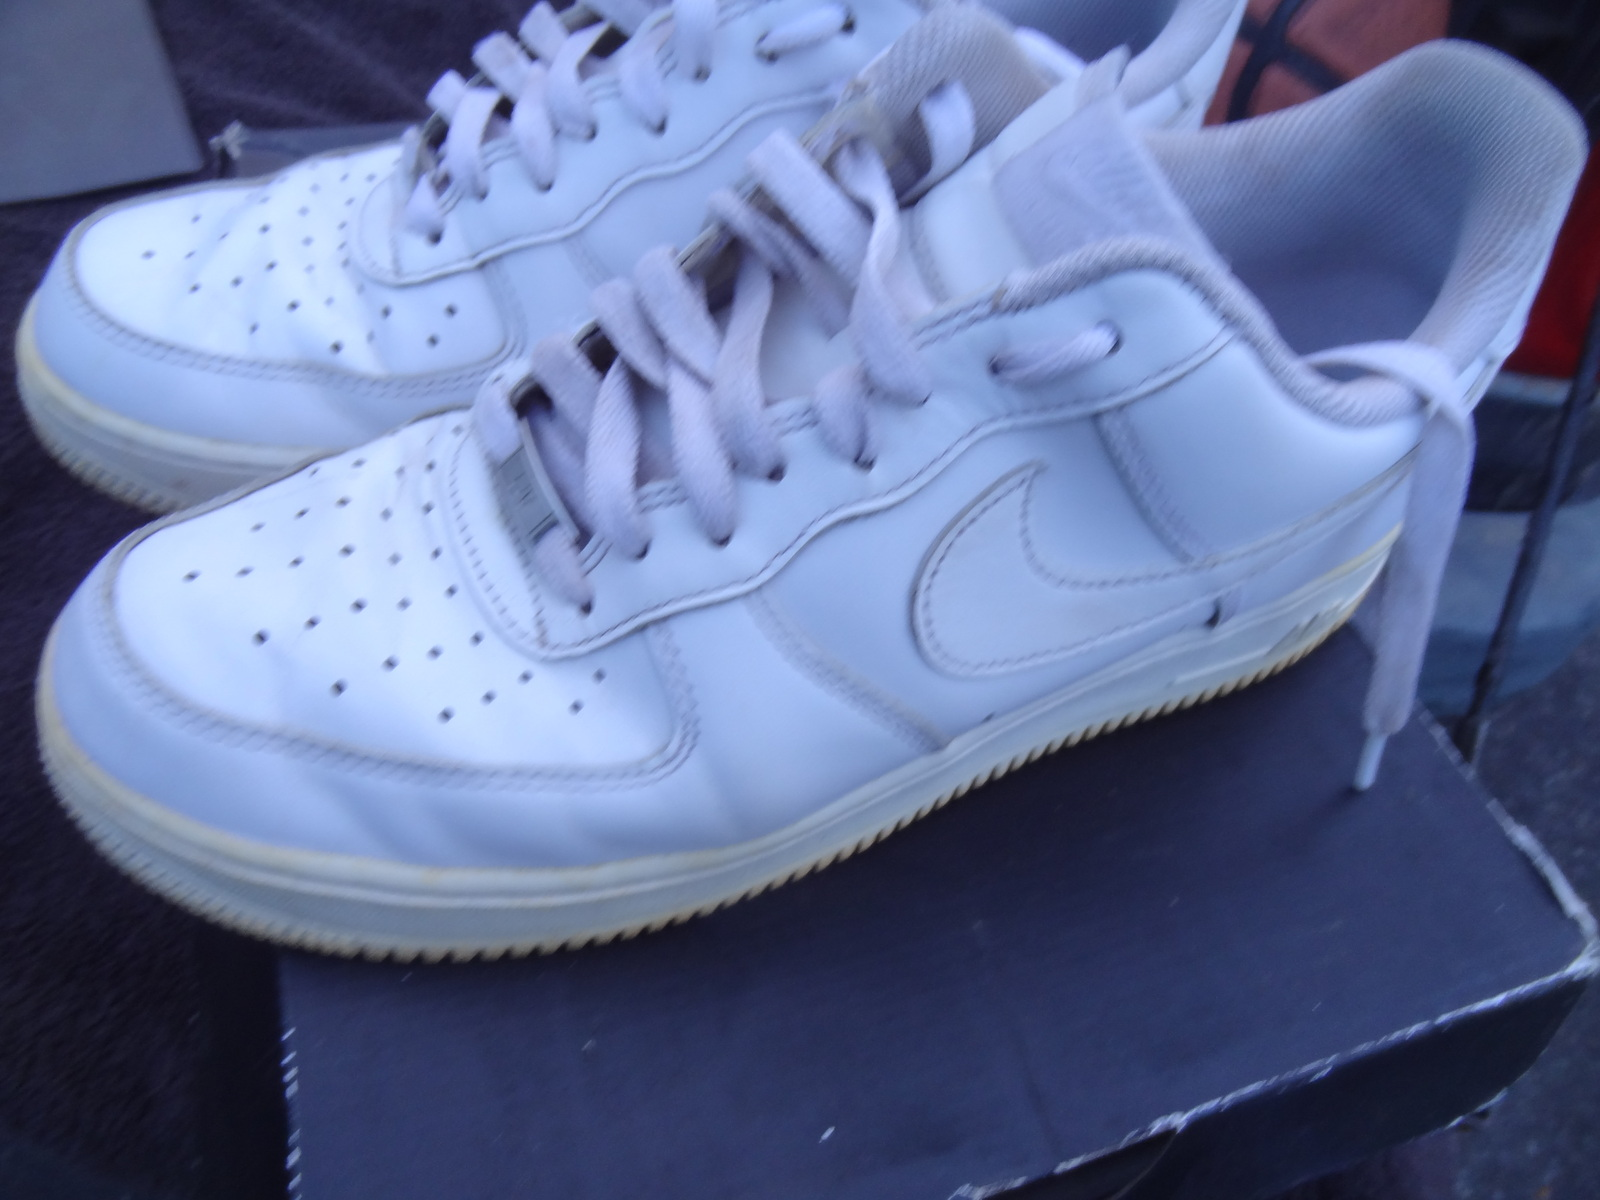 Nike Men's Size 10 Air Force 1 2014 AF1 Low and 50 similar items